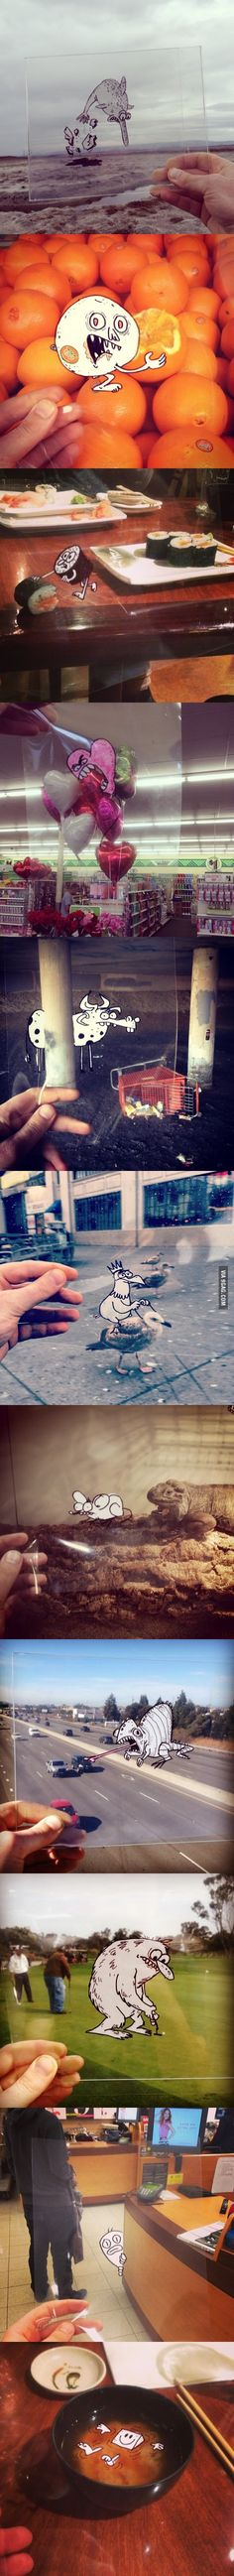 Cartoon Doodles in real life